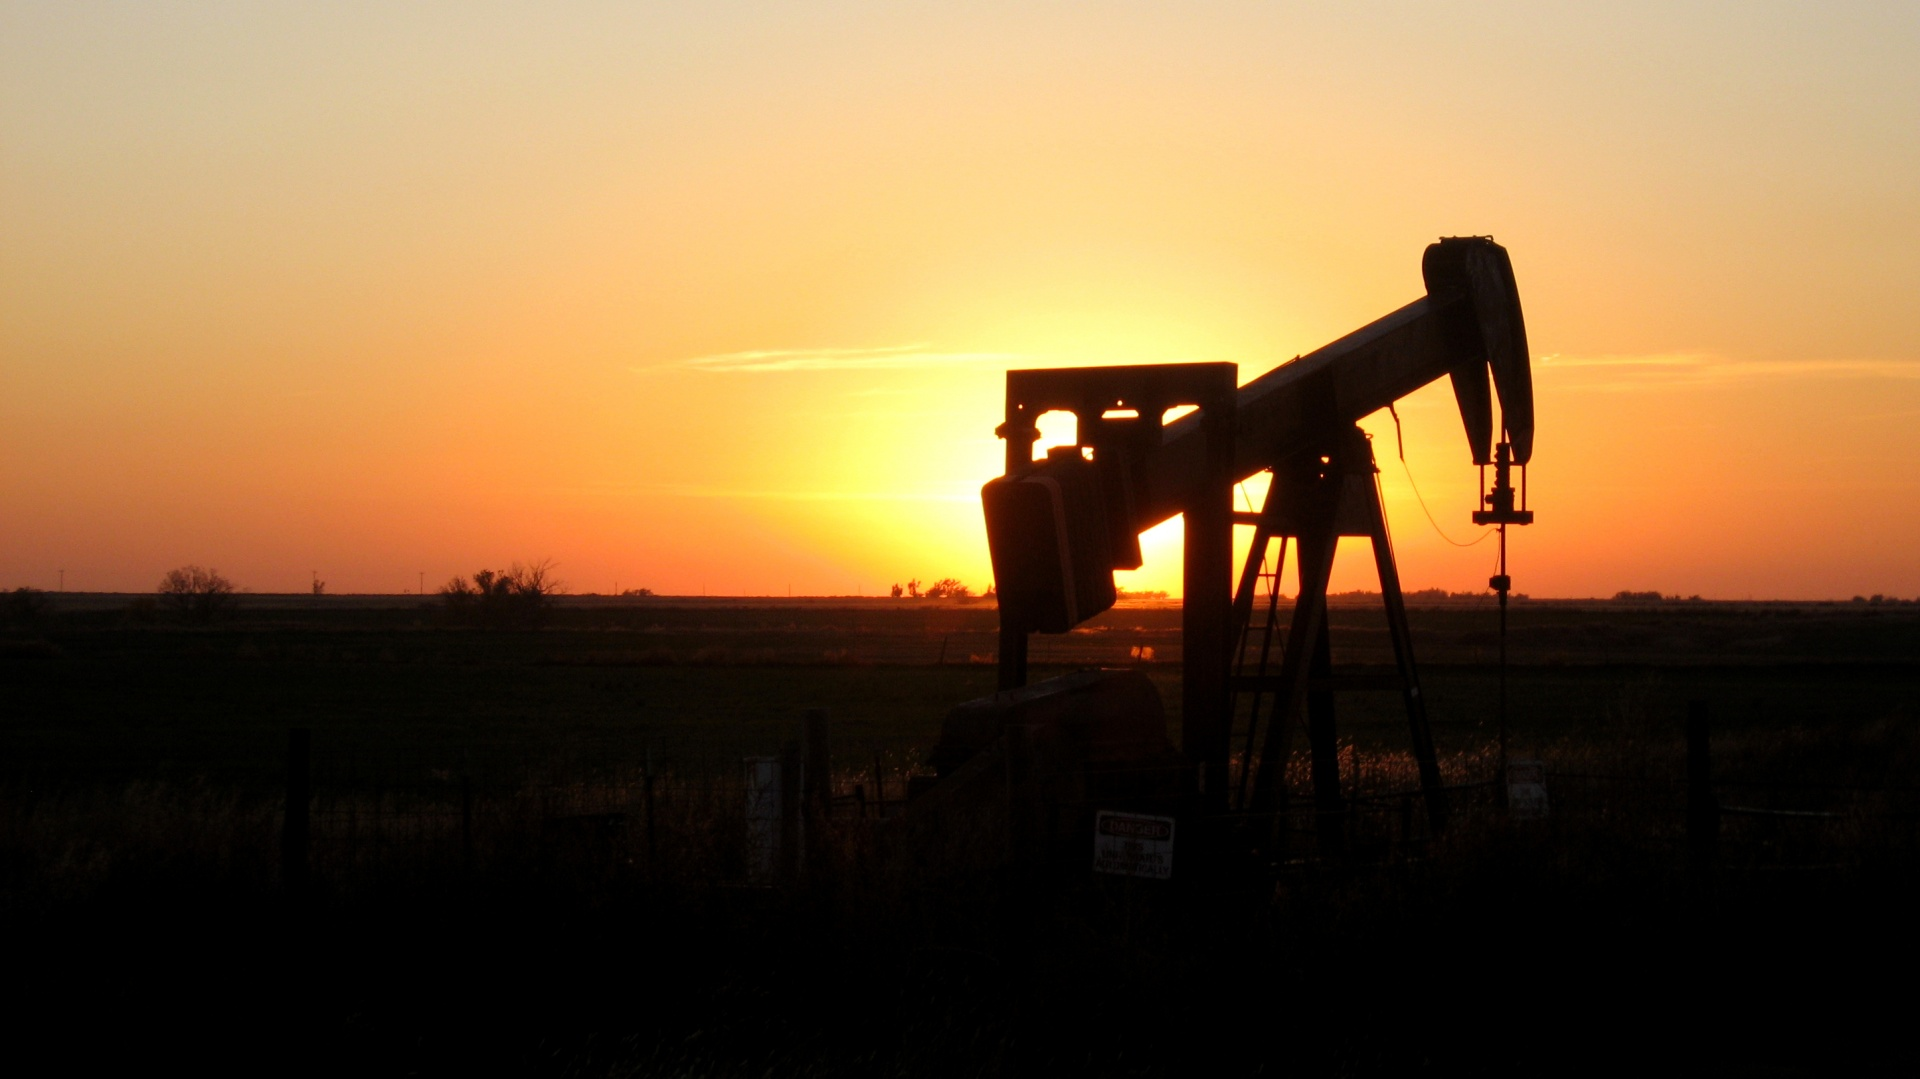 oklahoma sunset oil rig | EconAlerts